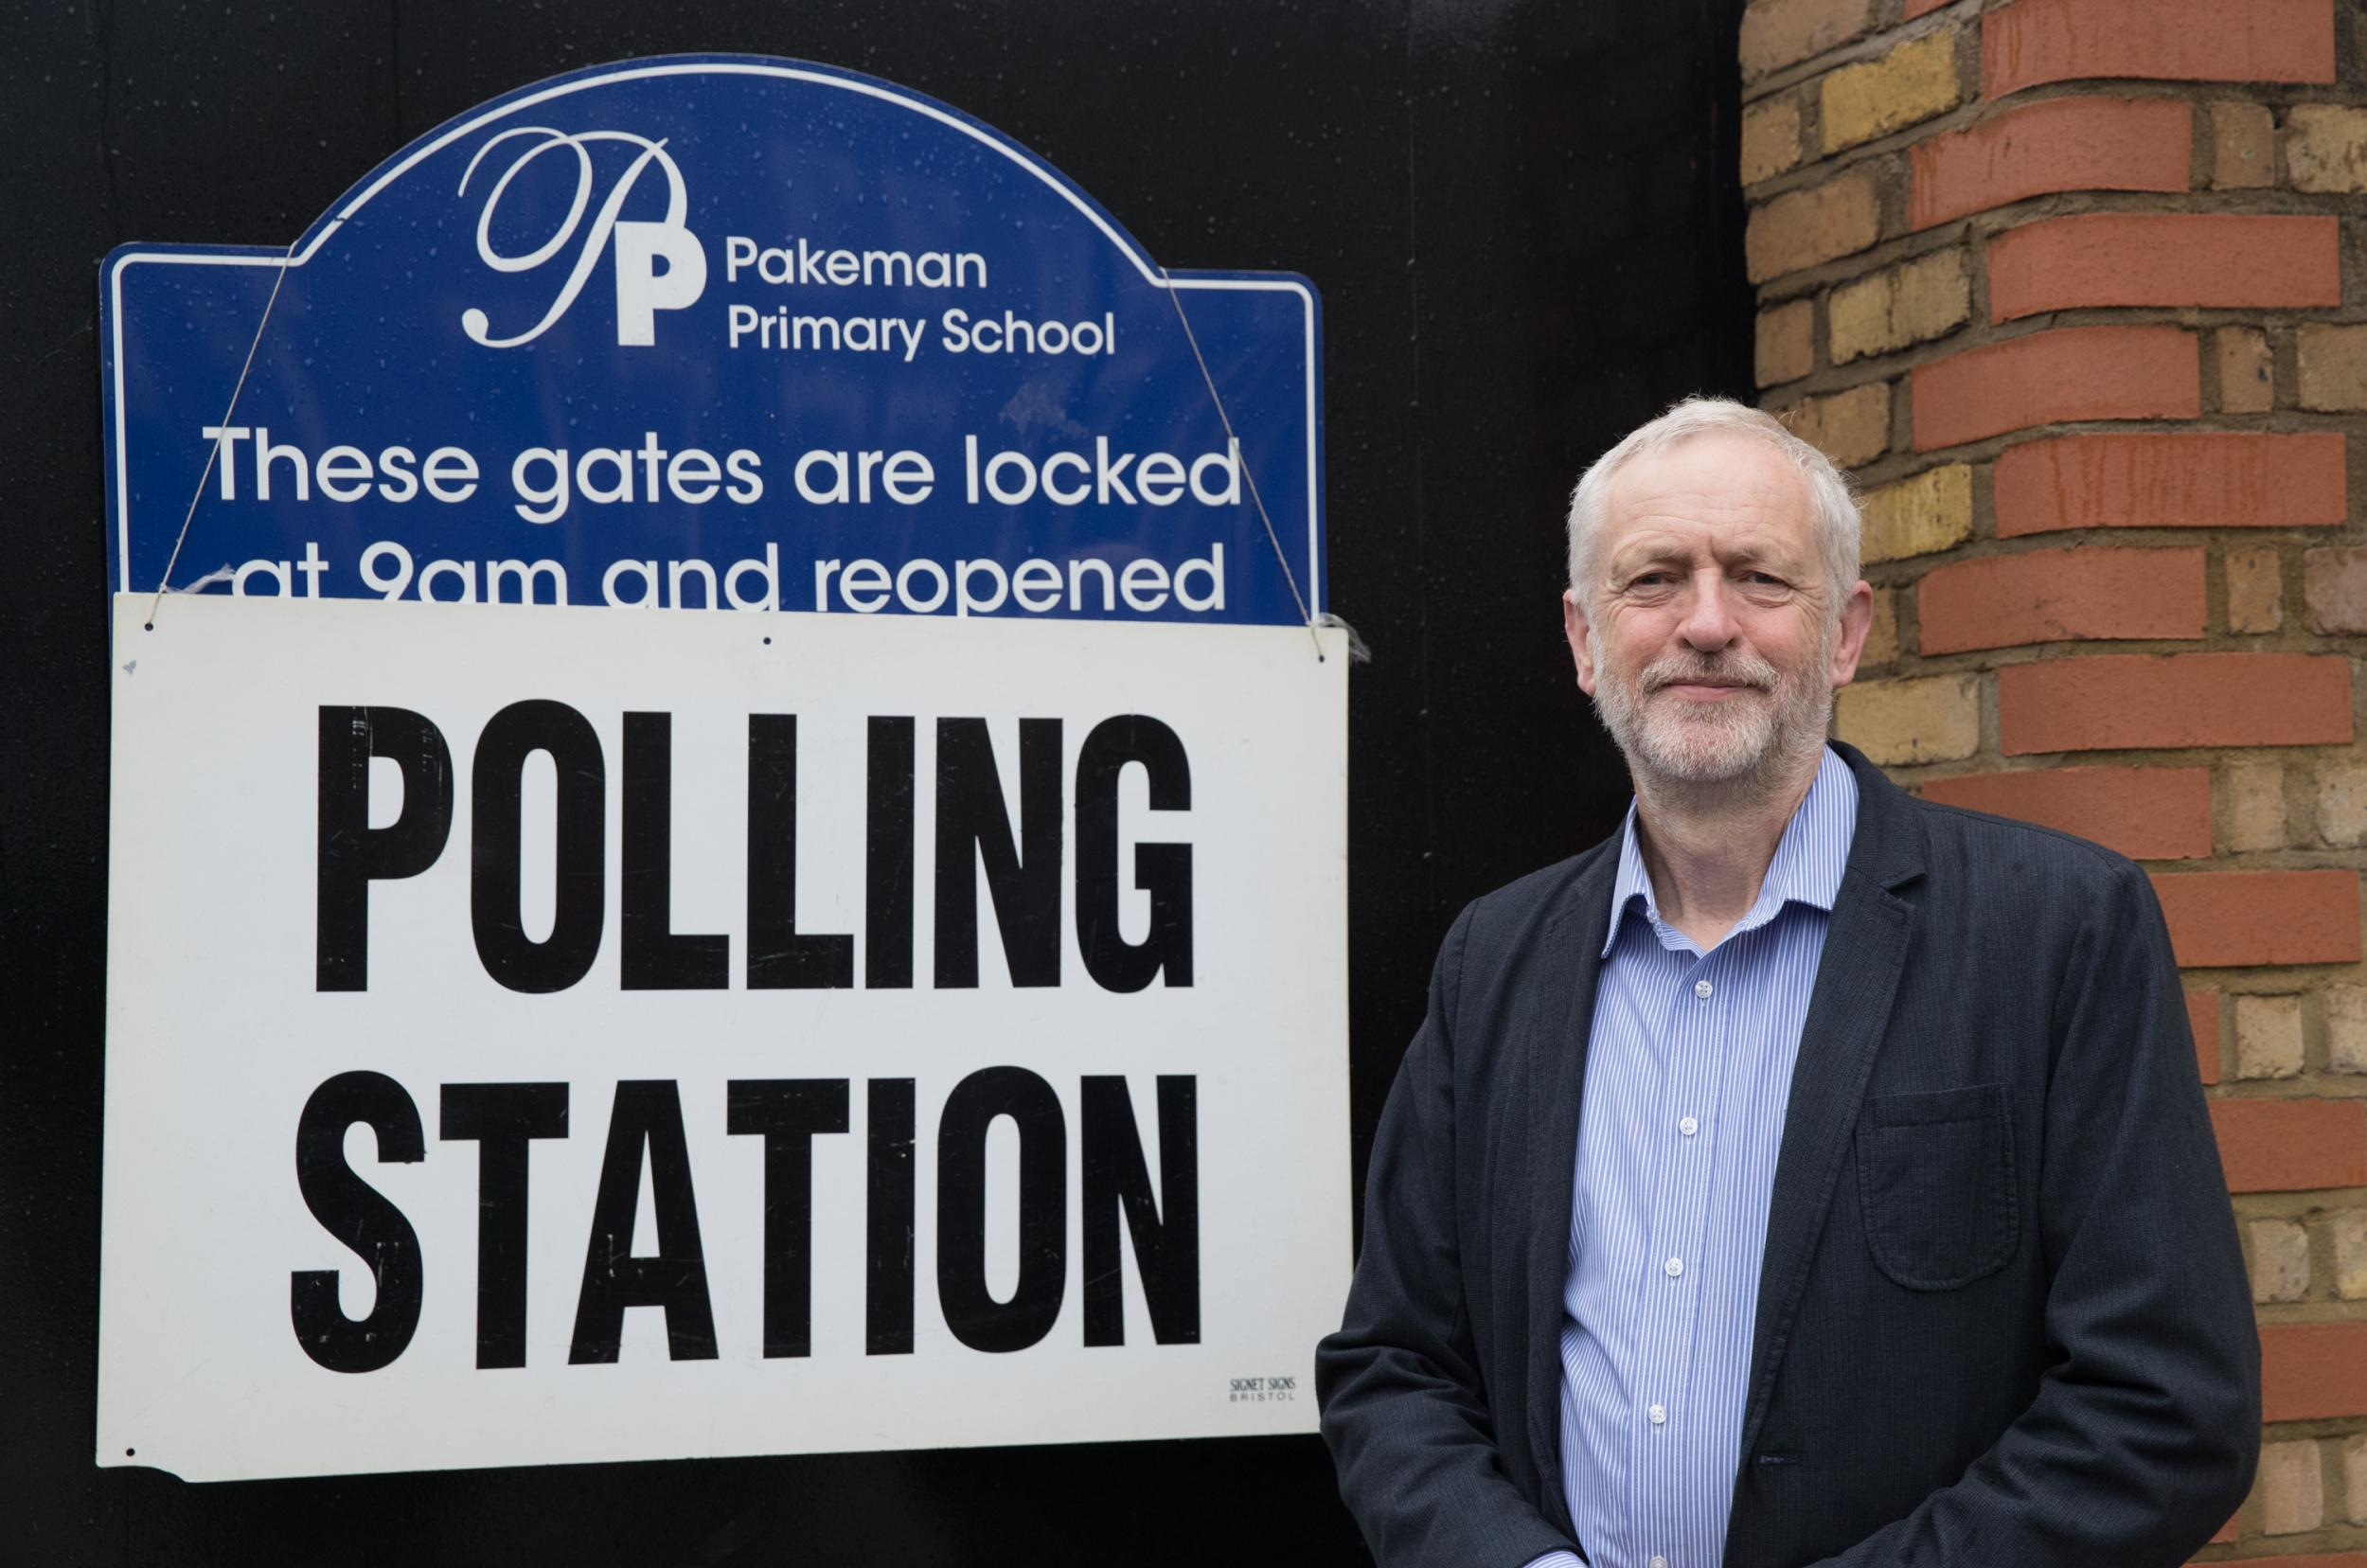 Pupils have missed more than a week of school because of elections